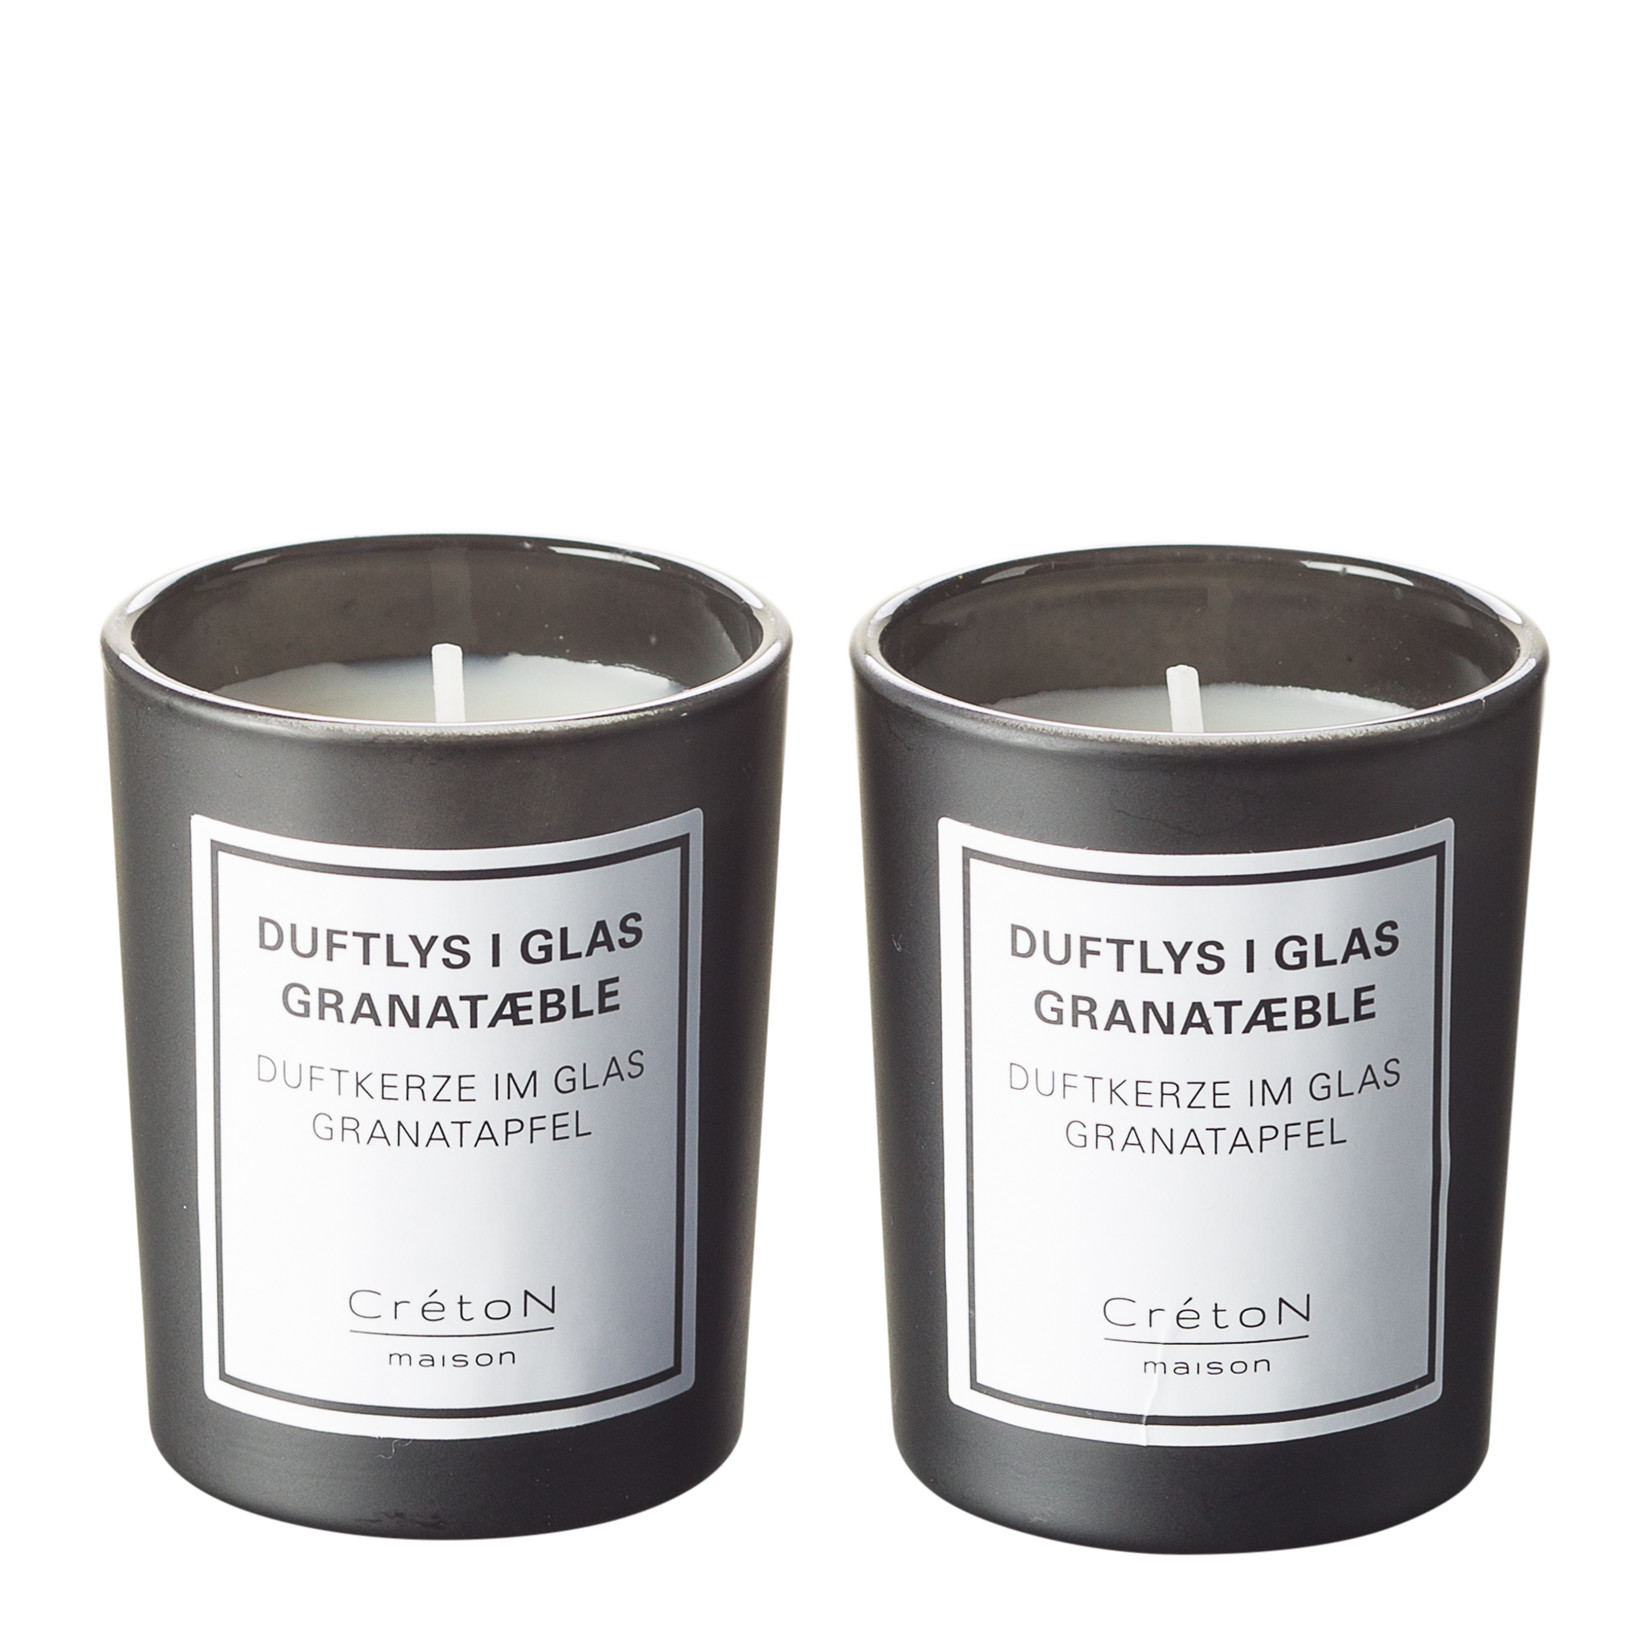 Cr ton maison stacy duftlys granat ble for Creton maison